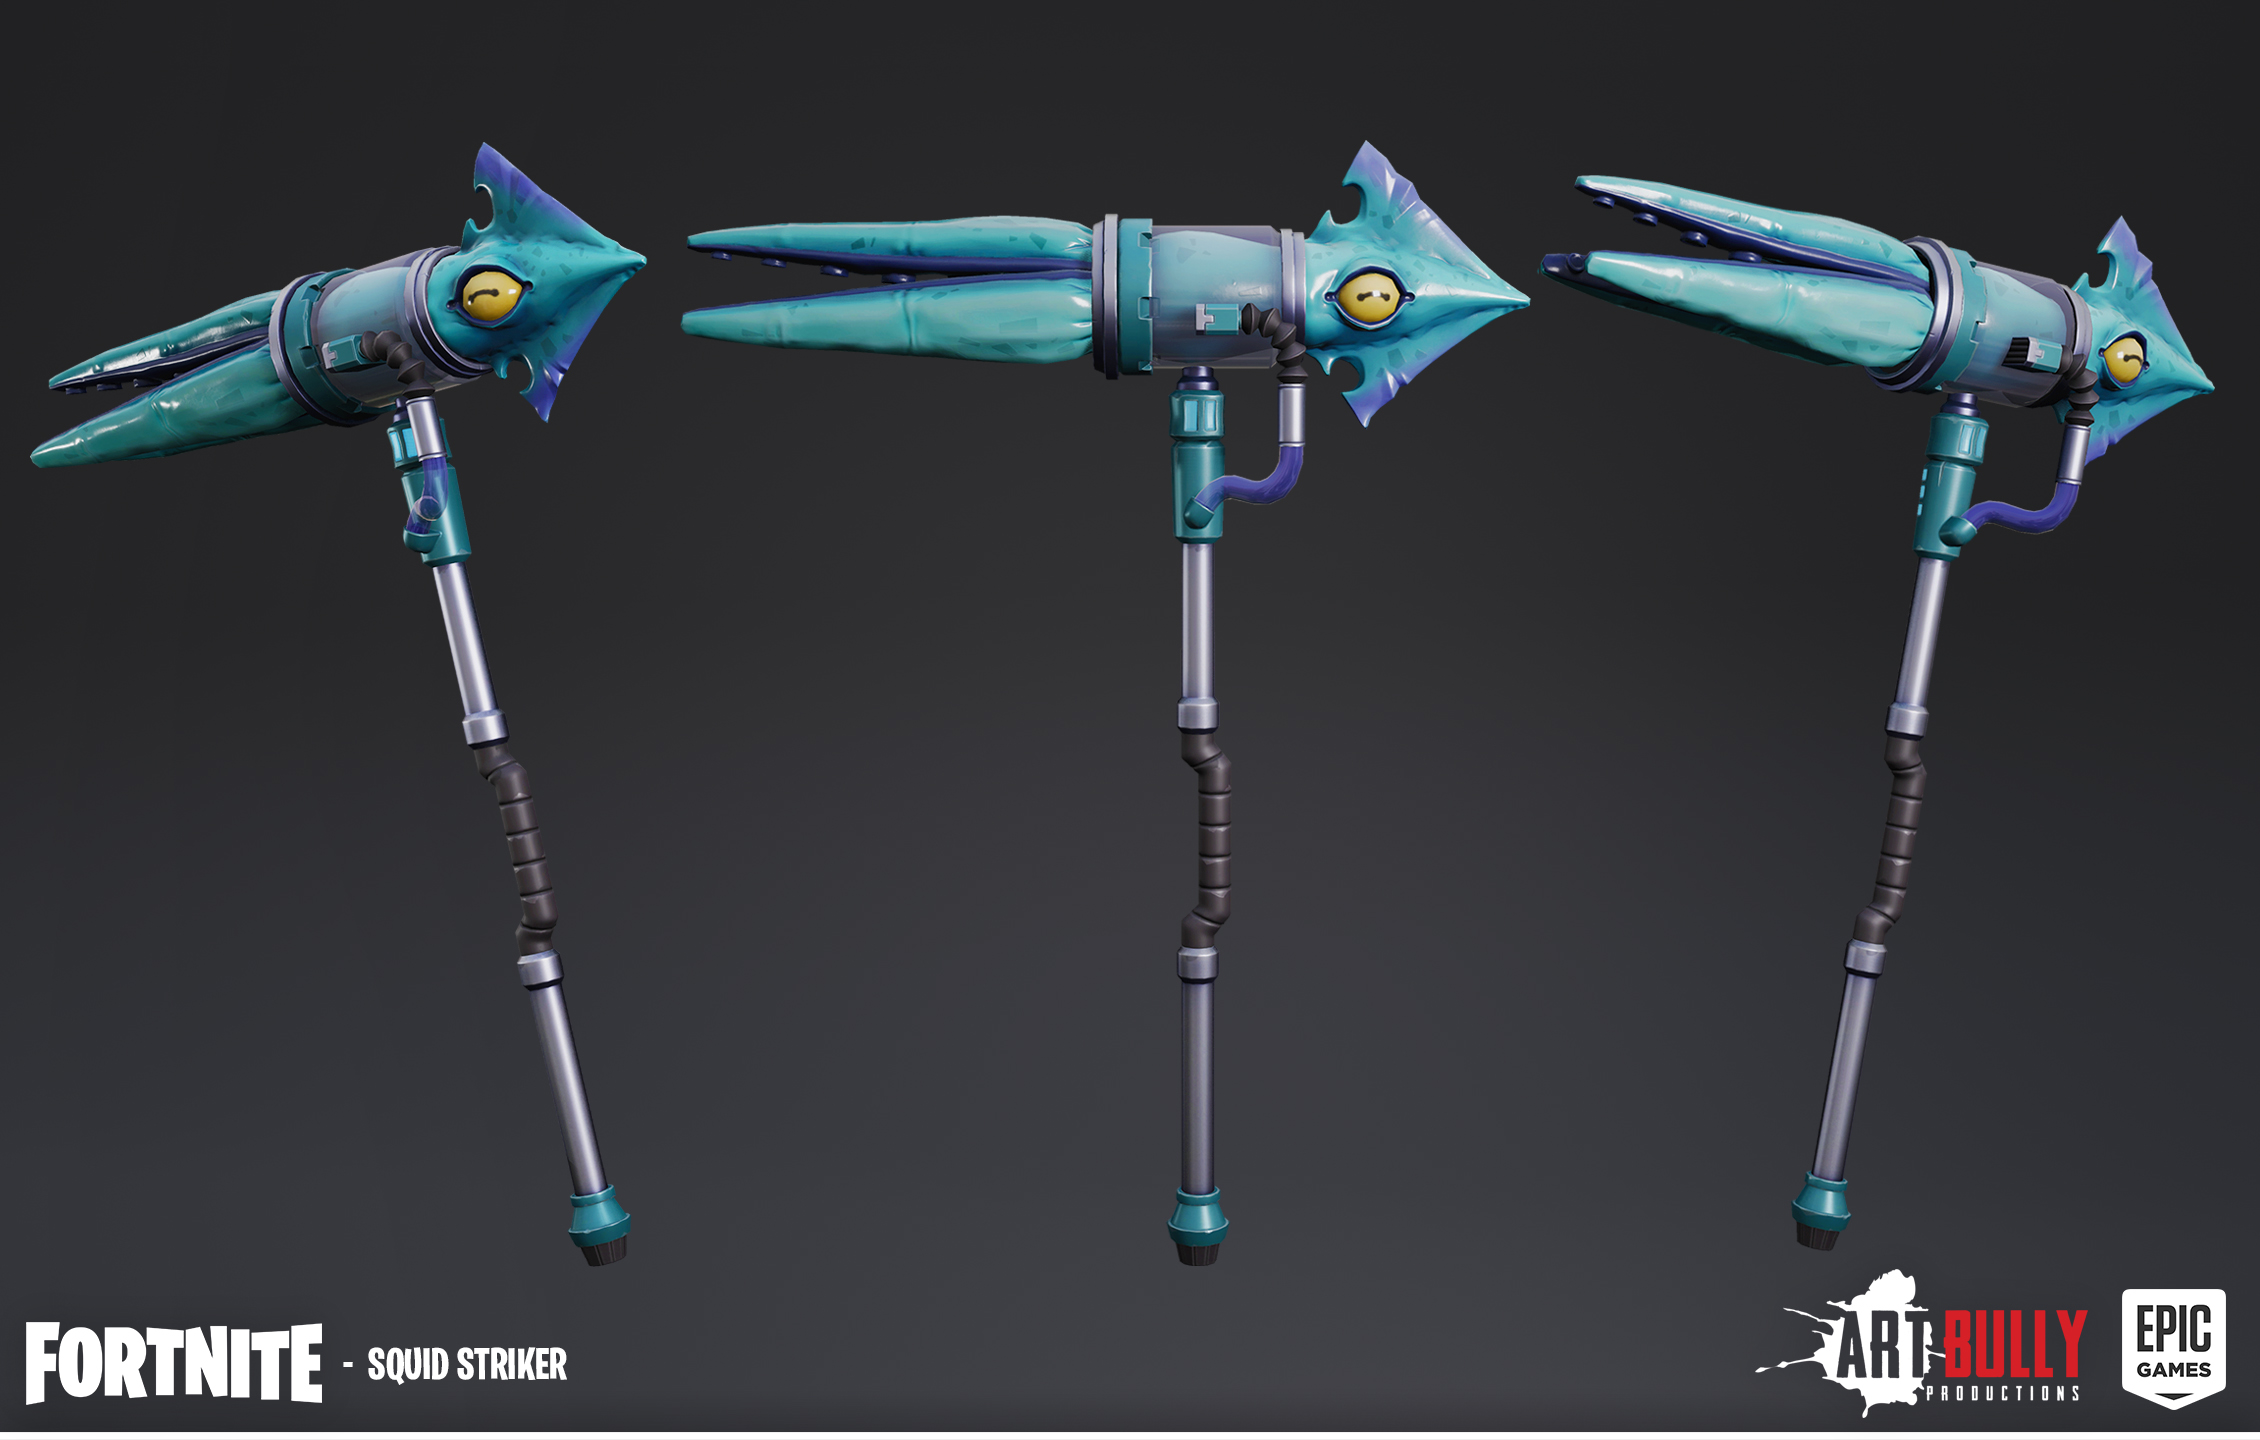 Pickaxe_Squid_Striker_Render_Texture.jpg